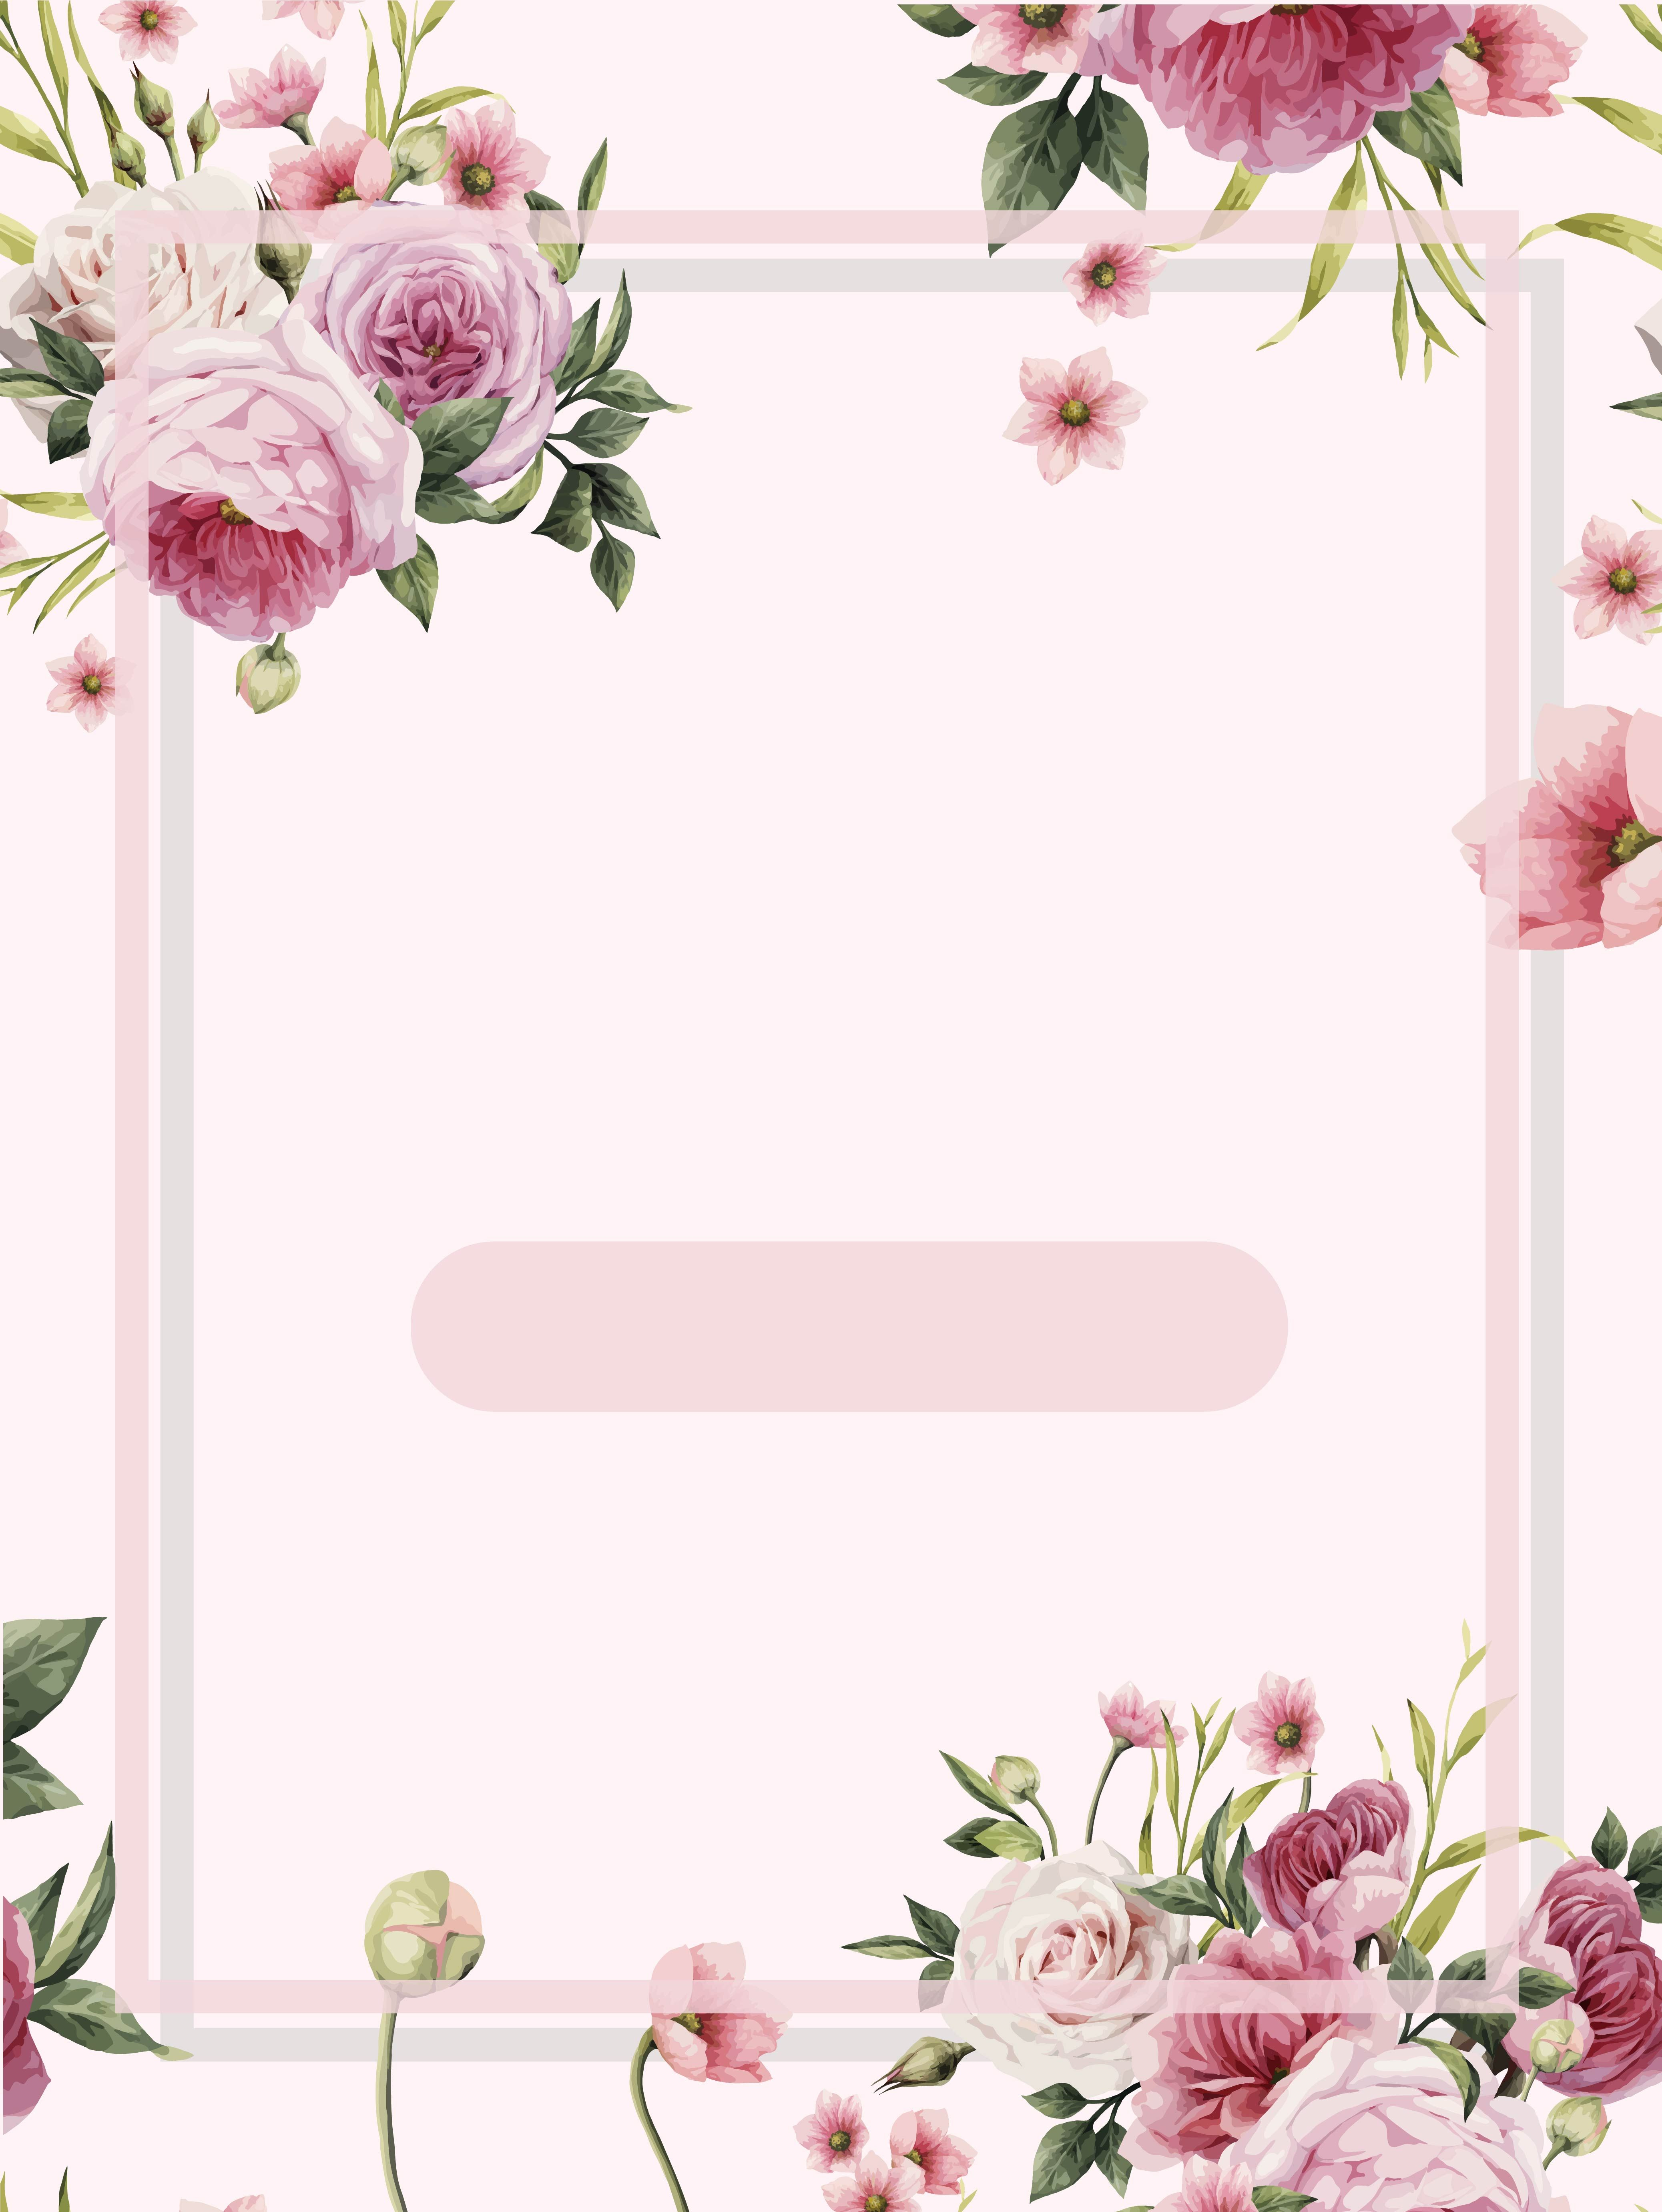 Pink Flowers Frame Watercolor Background In 2020 Watercolor